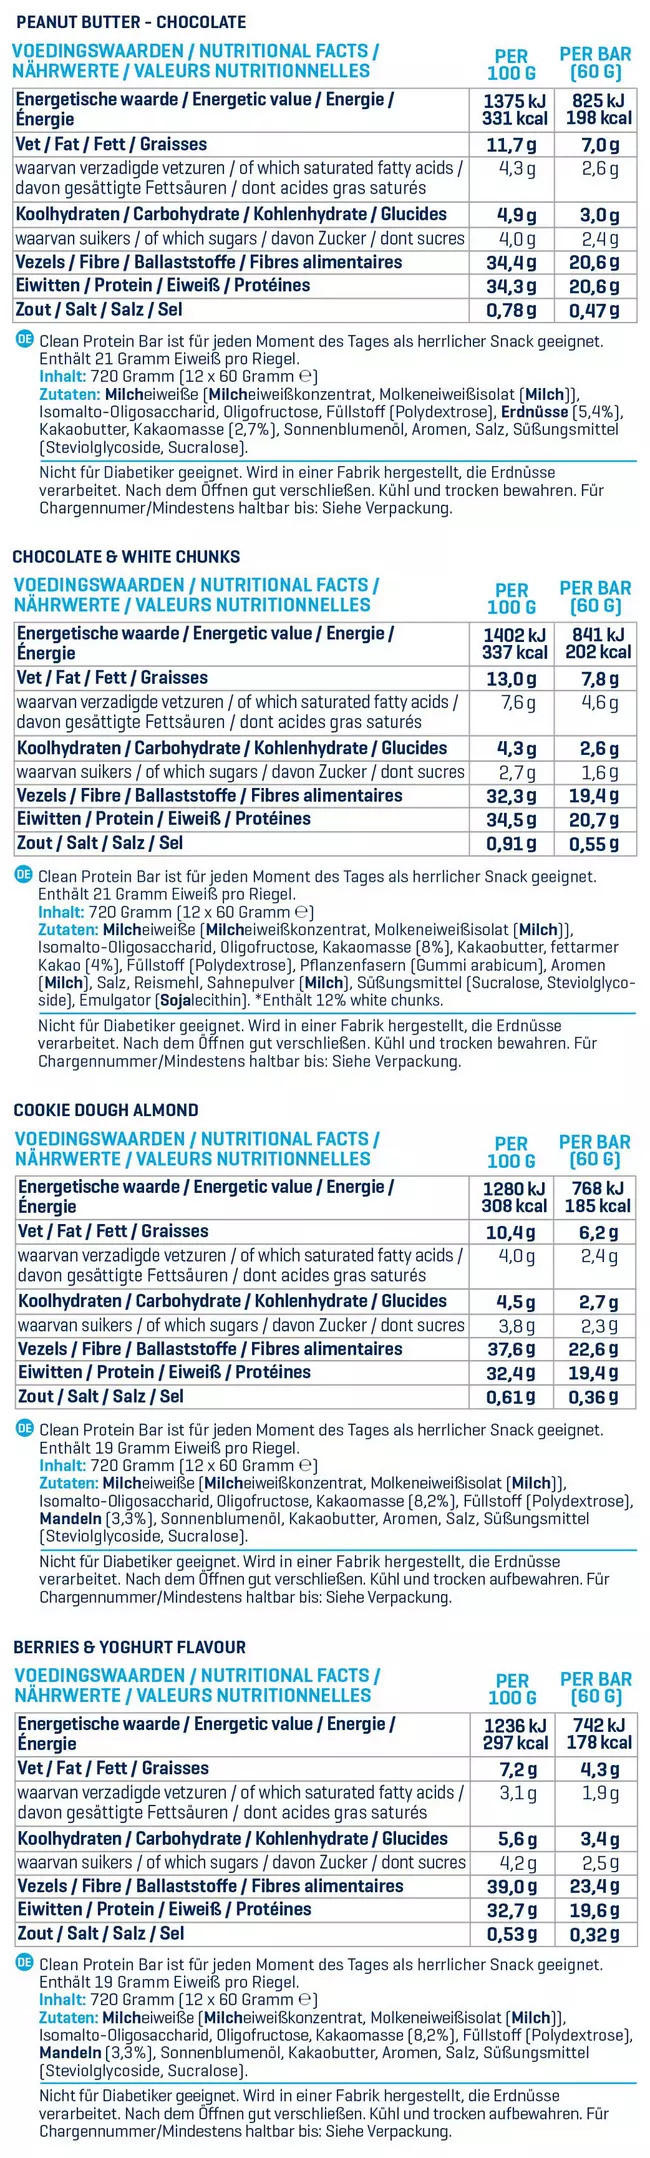 Clean Protein Bar Nutritional Information 2